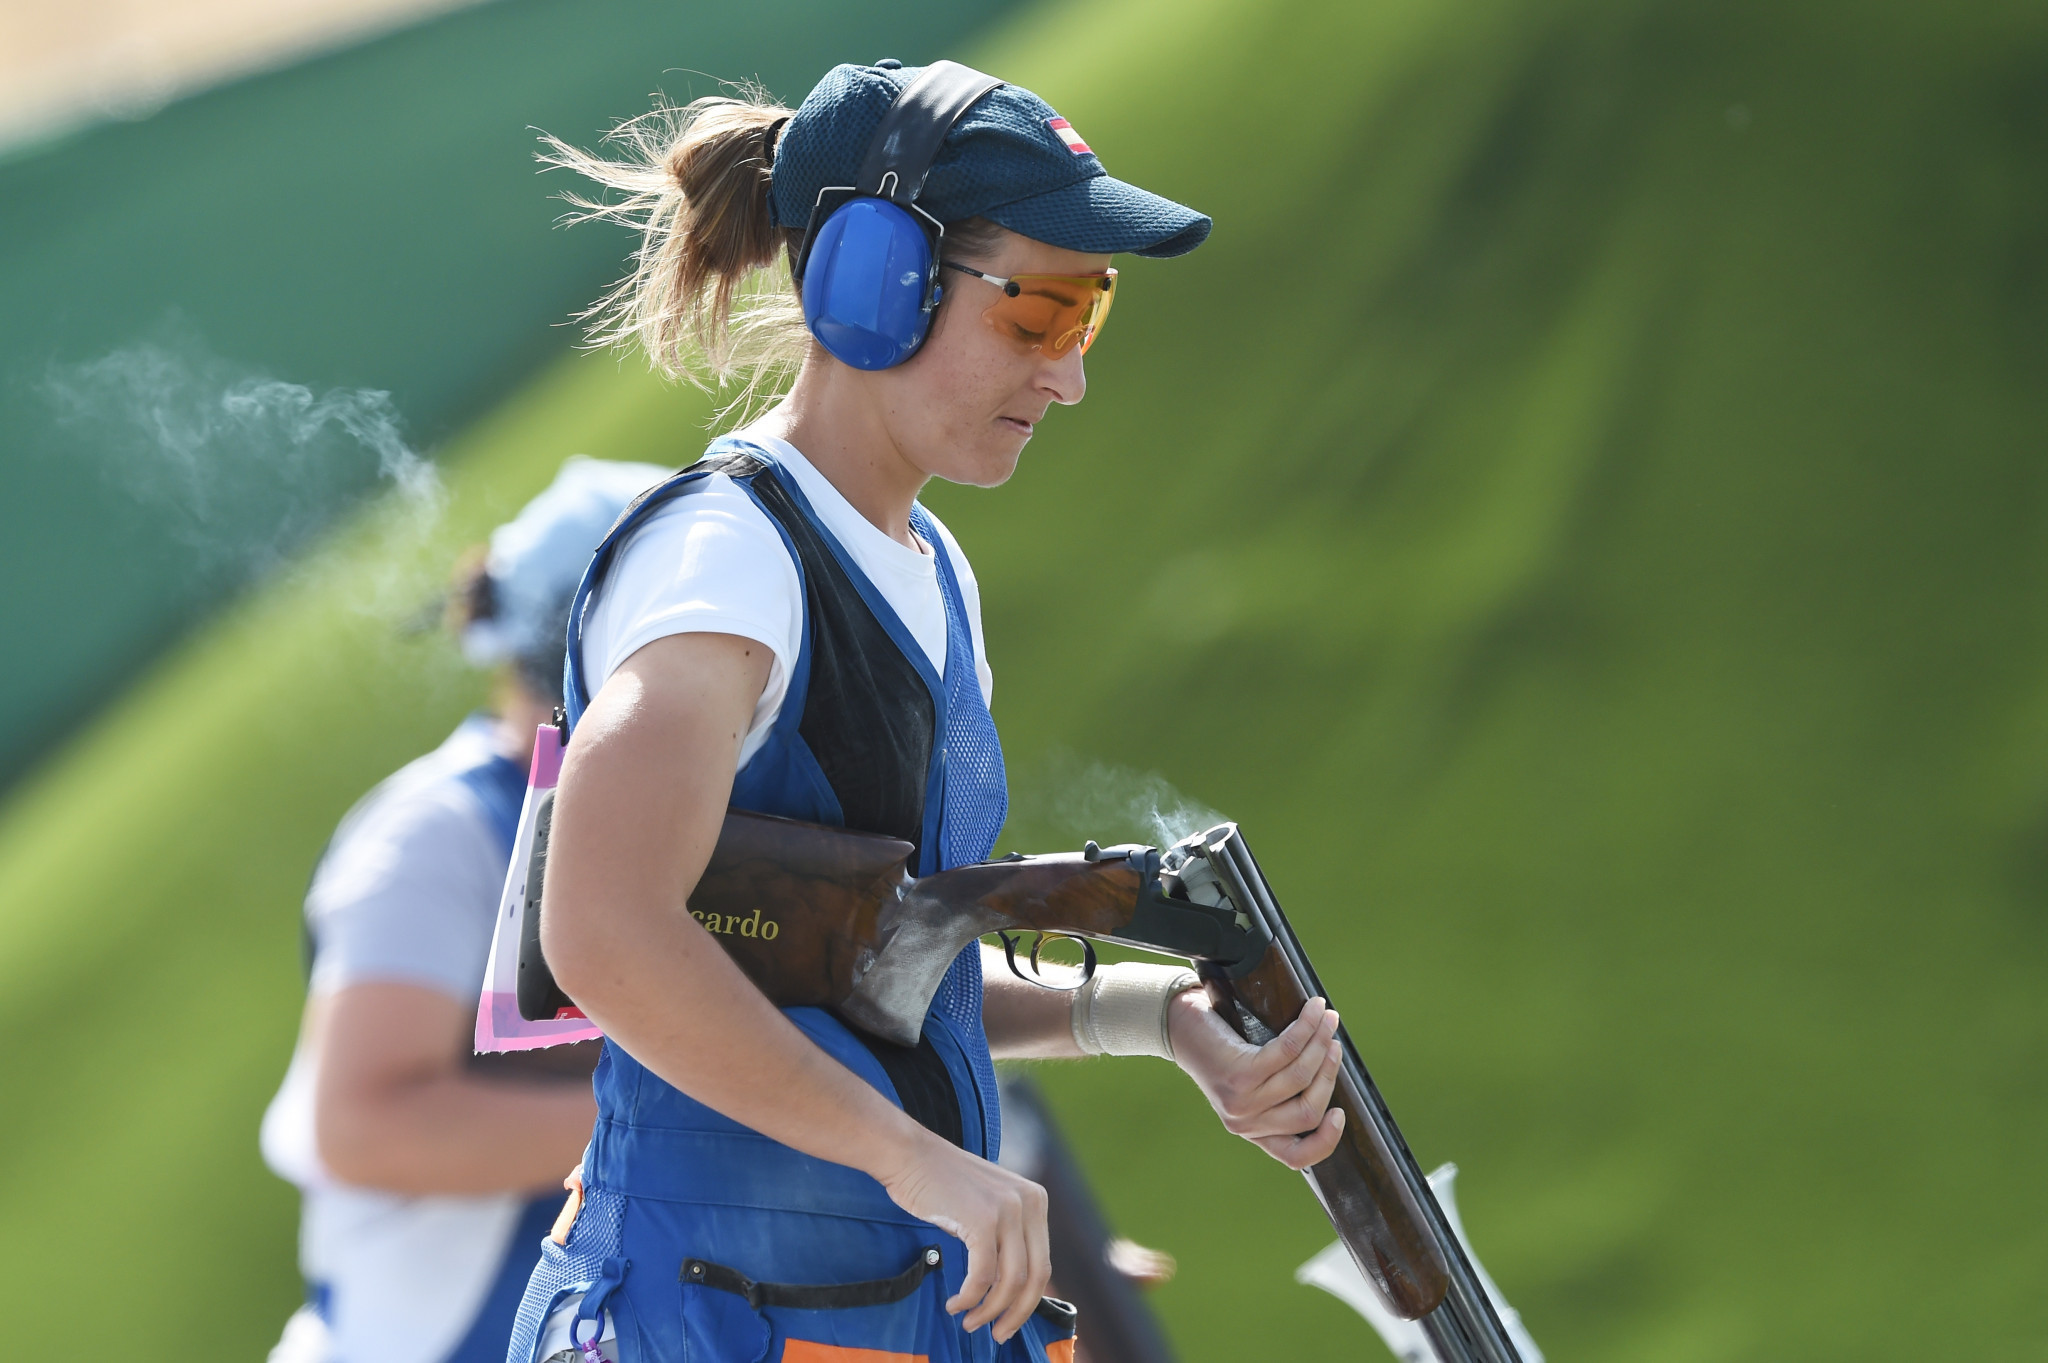 Fátima Gálvez and partner Alberto Fernández hit 46 out of 50 targets to earn an overwhelming win in the trap mixed team bronze-medal match on the last day of the ISSF Shotgun World Cup in Lonato ©Getty Images